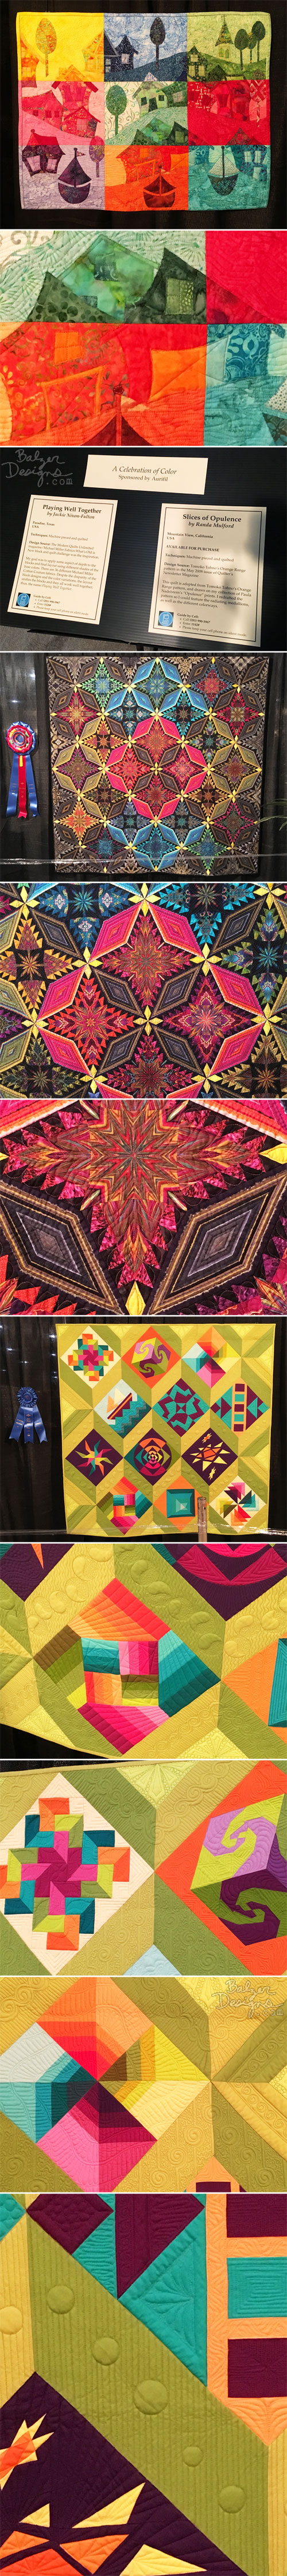 From The Balzer Designs Blog: Quilt Festival 2017: Part Two